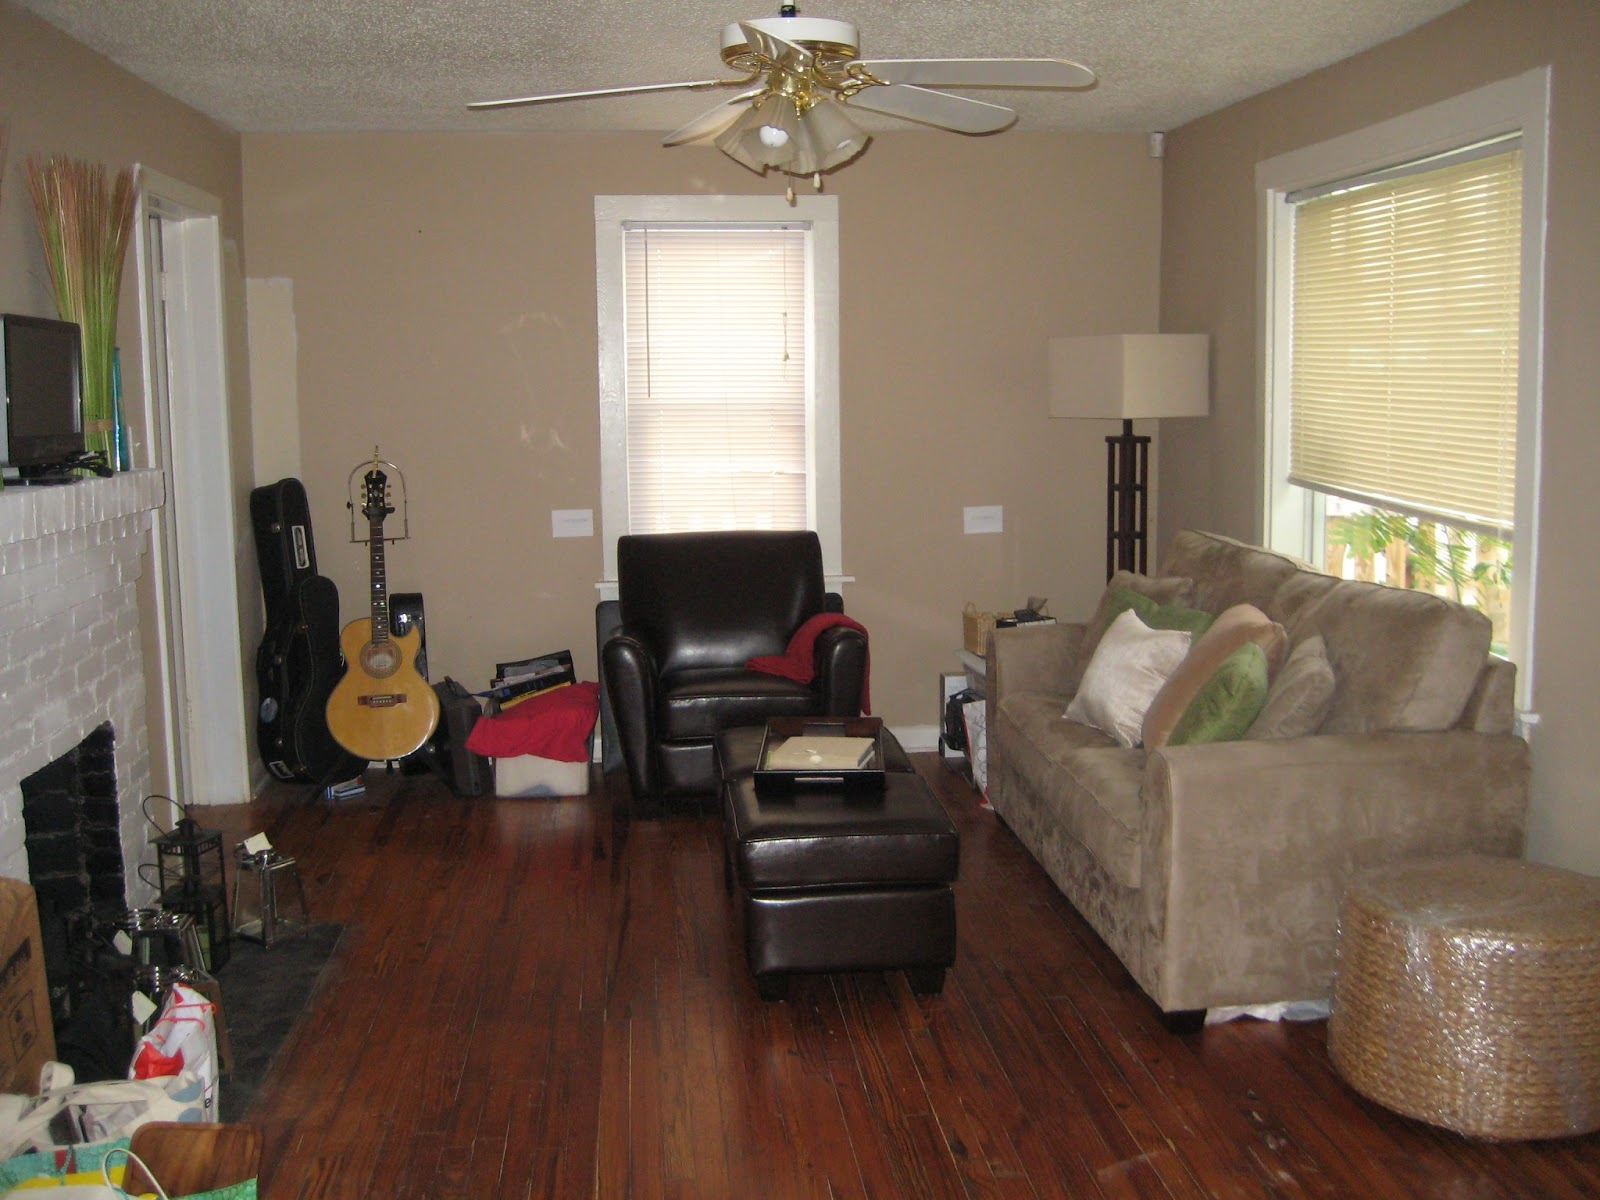 Living room makeovers before and after pictures